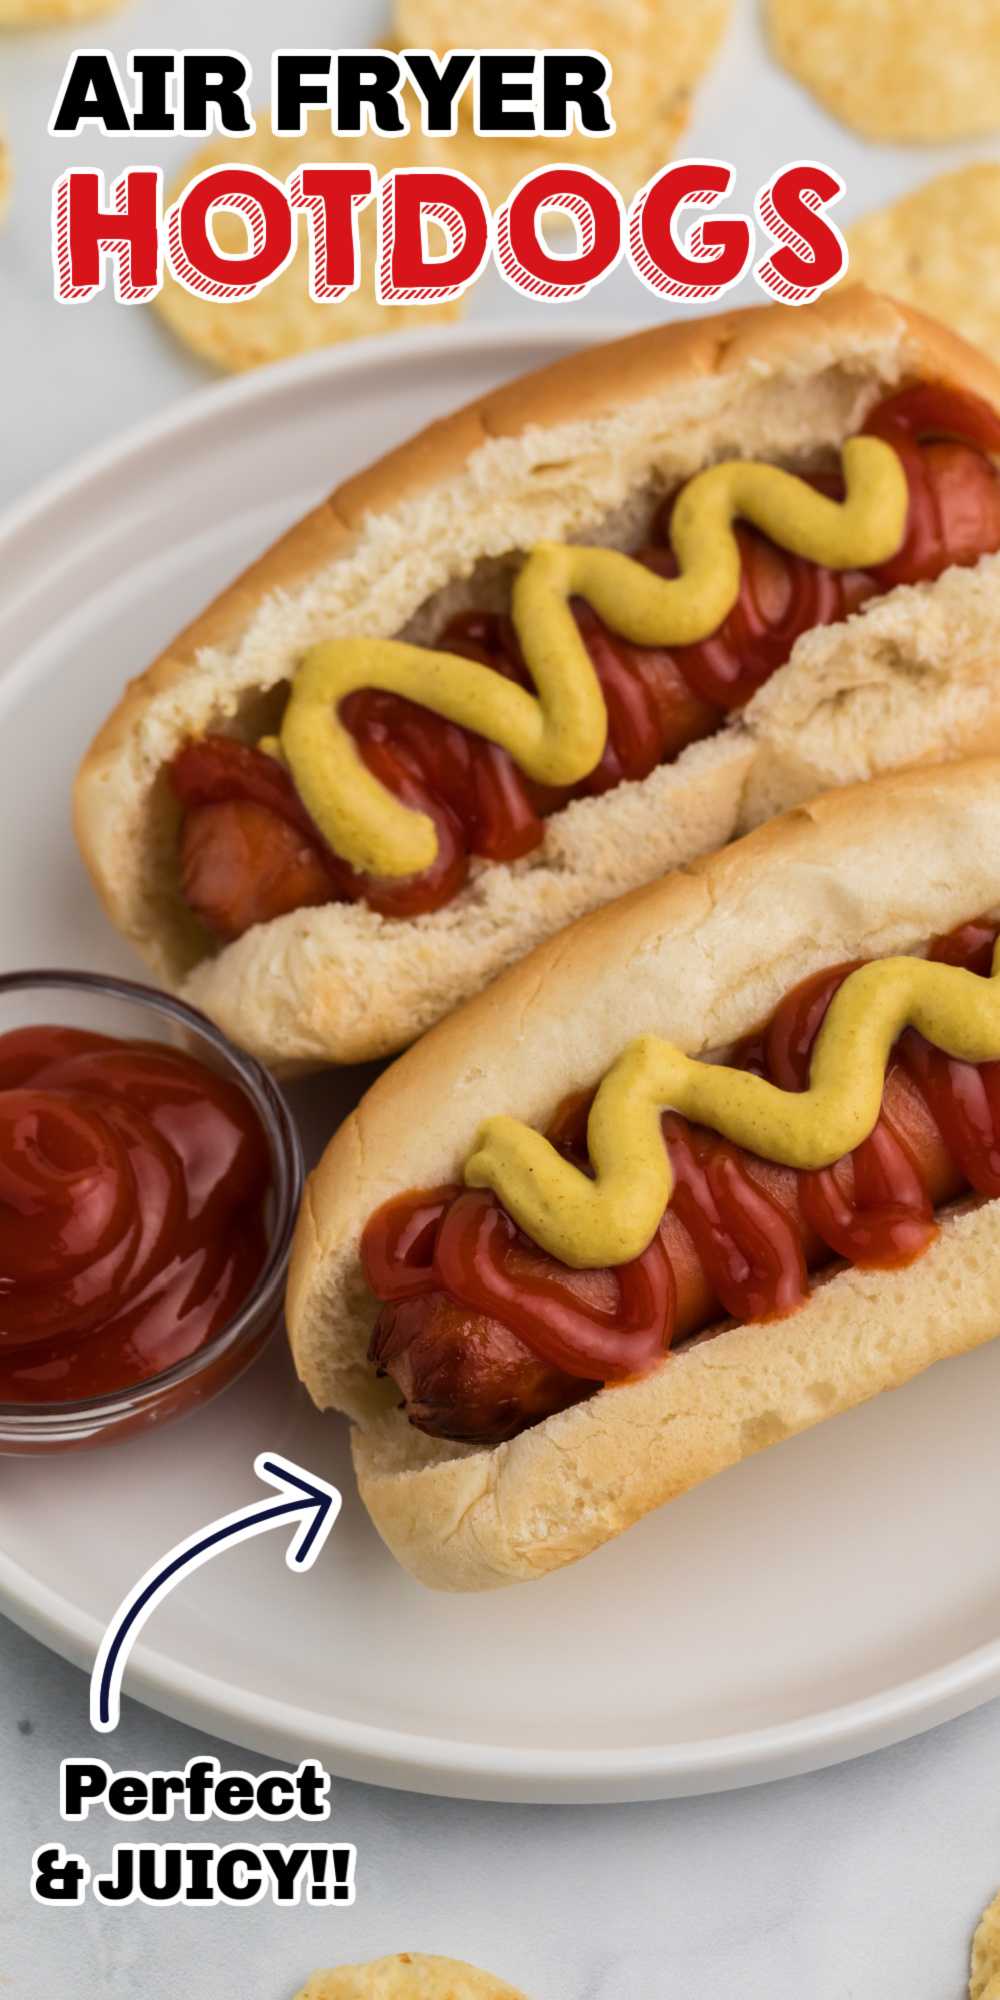 If you haven't made hot dogs in the Air Fryer you are totally missing out! No more boiling water, heating up the grill or throwing them in the microwave only to have them explode. Air Fryer Hot Dogs take just a few minutes and you will love the juicy hot dog that's made with ease.